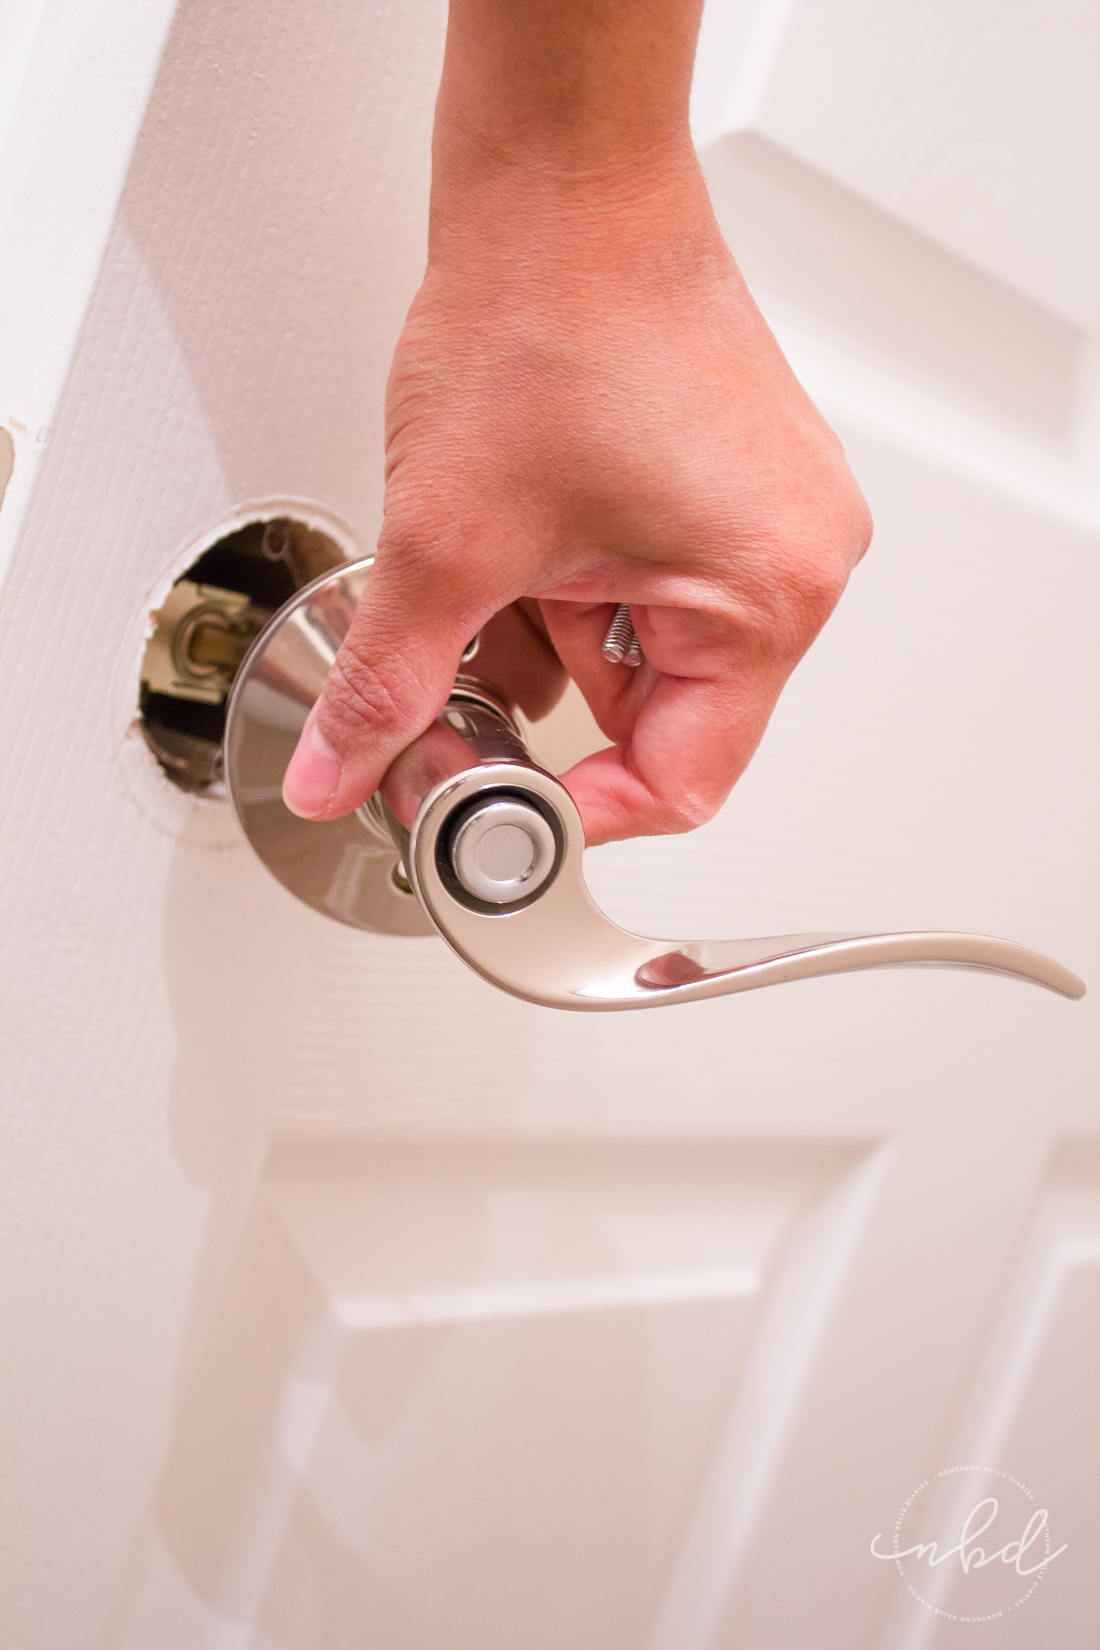 How to Install Reversible Doorknobs - figuring out the right side